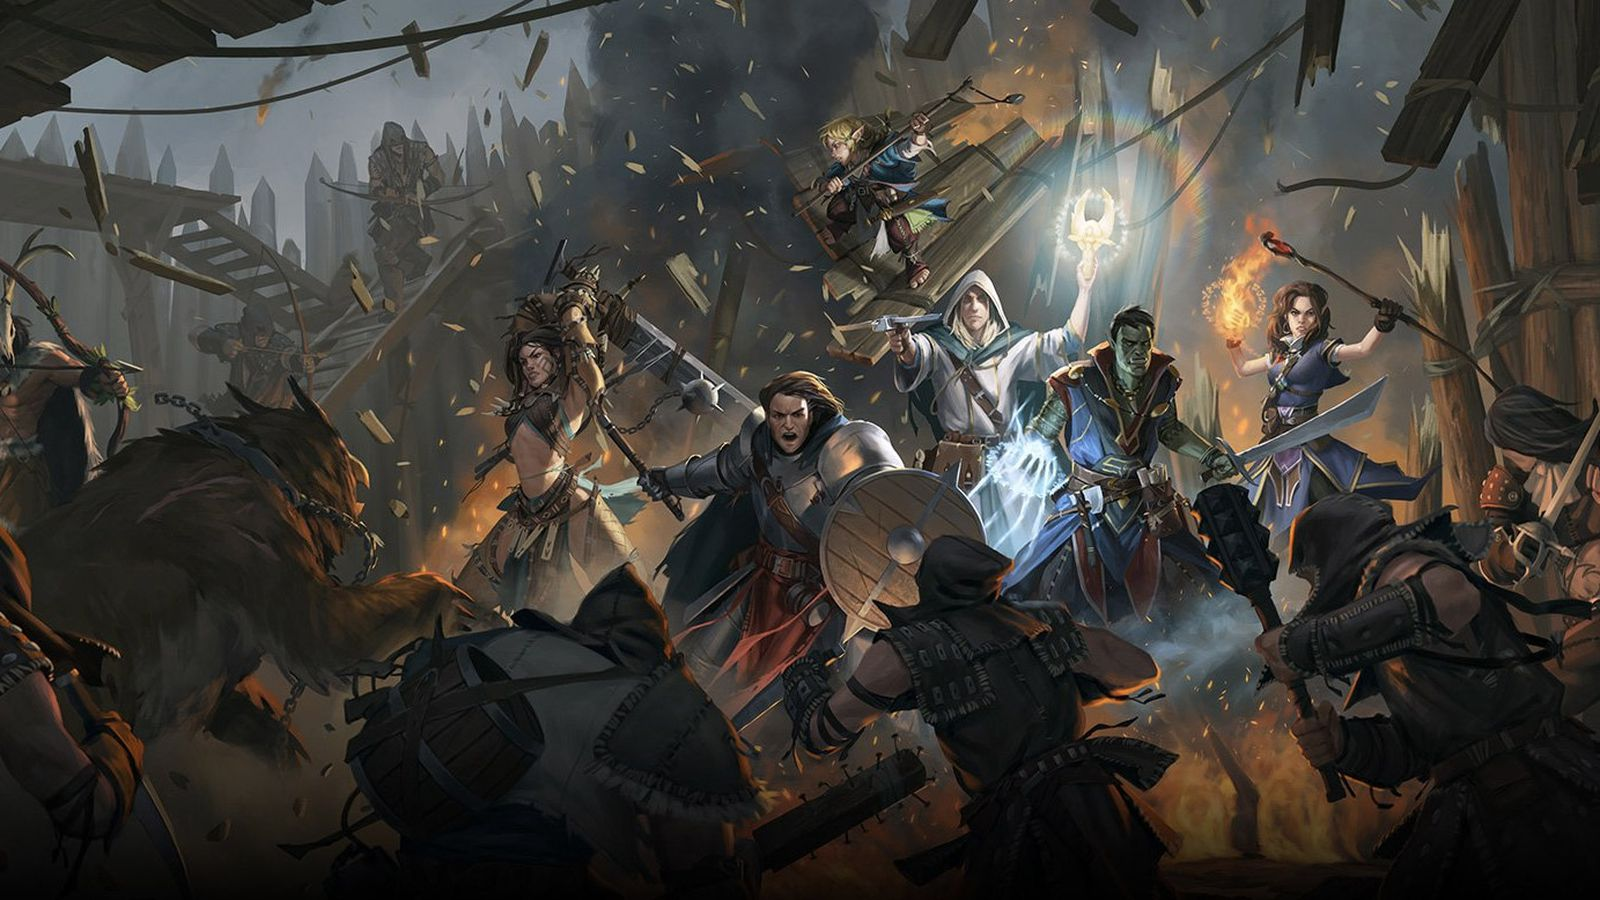 Pathfinder will finally get its own isometric RPG thanks to successful Kickstarter